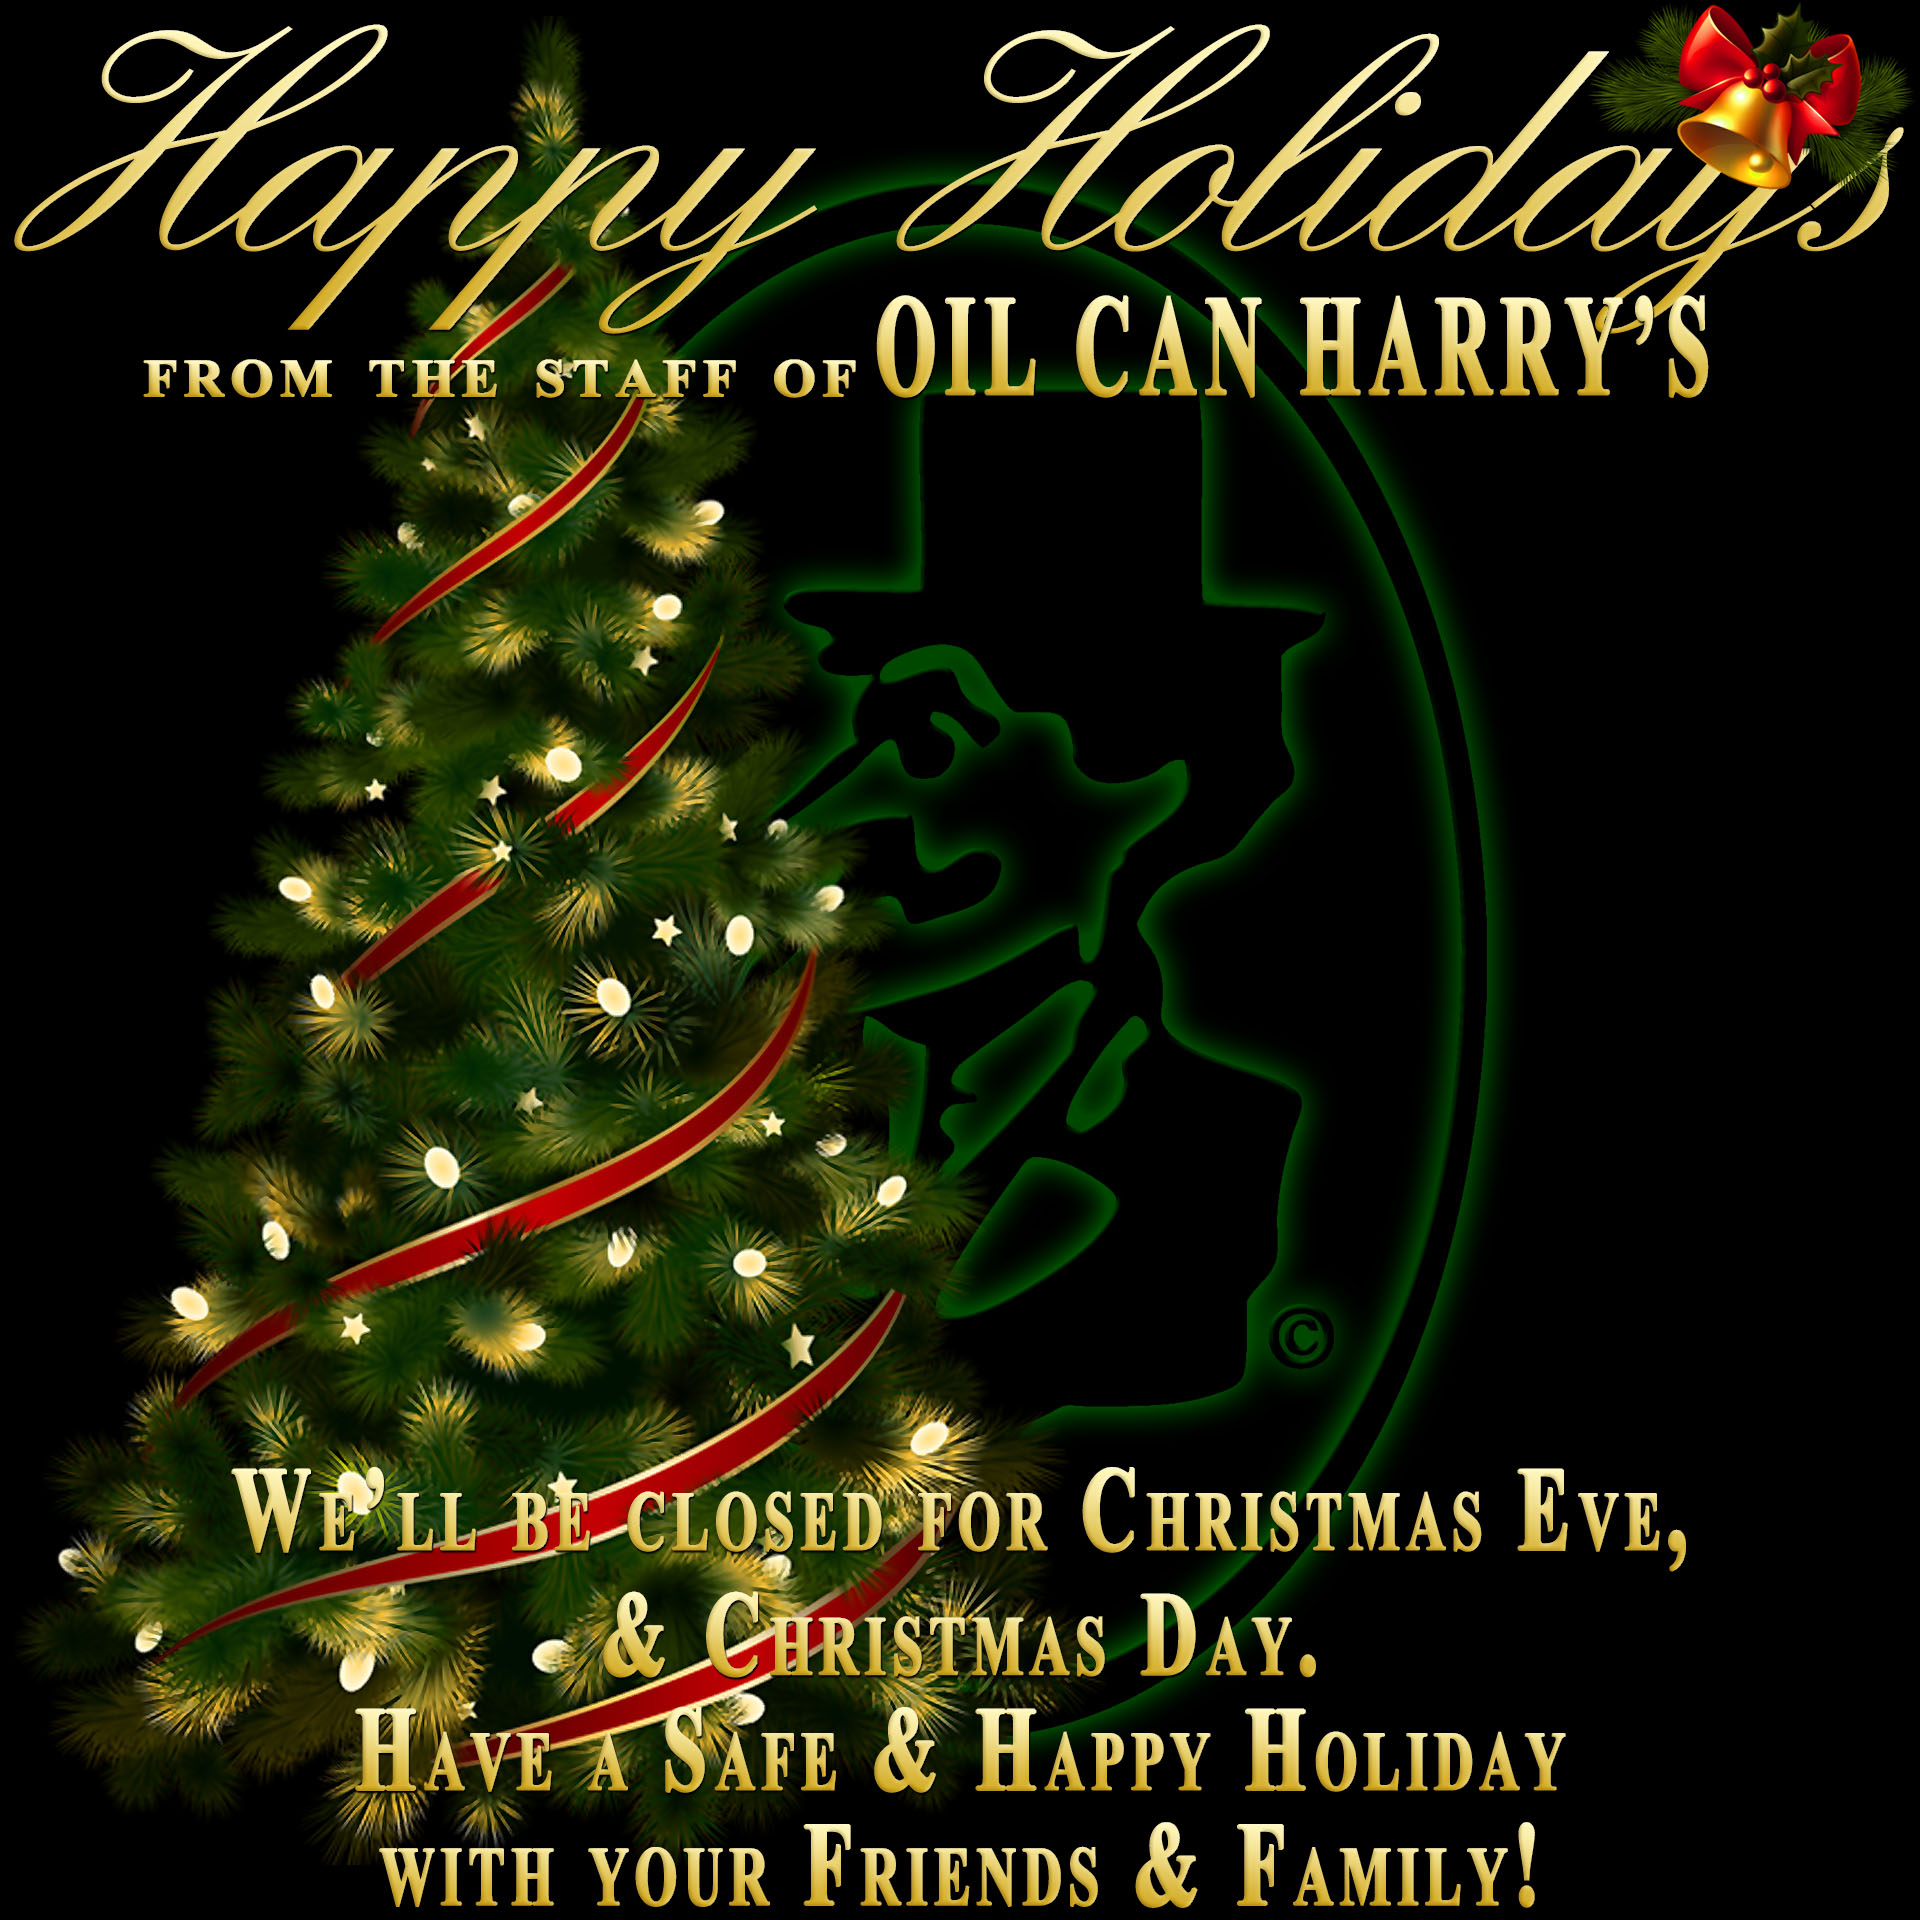 Happy Holidays from The Staff of Oil Can Harry's!